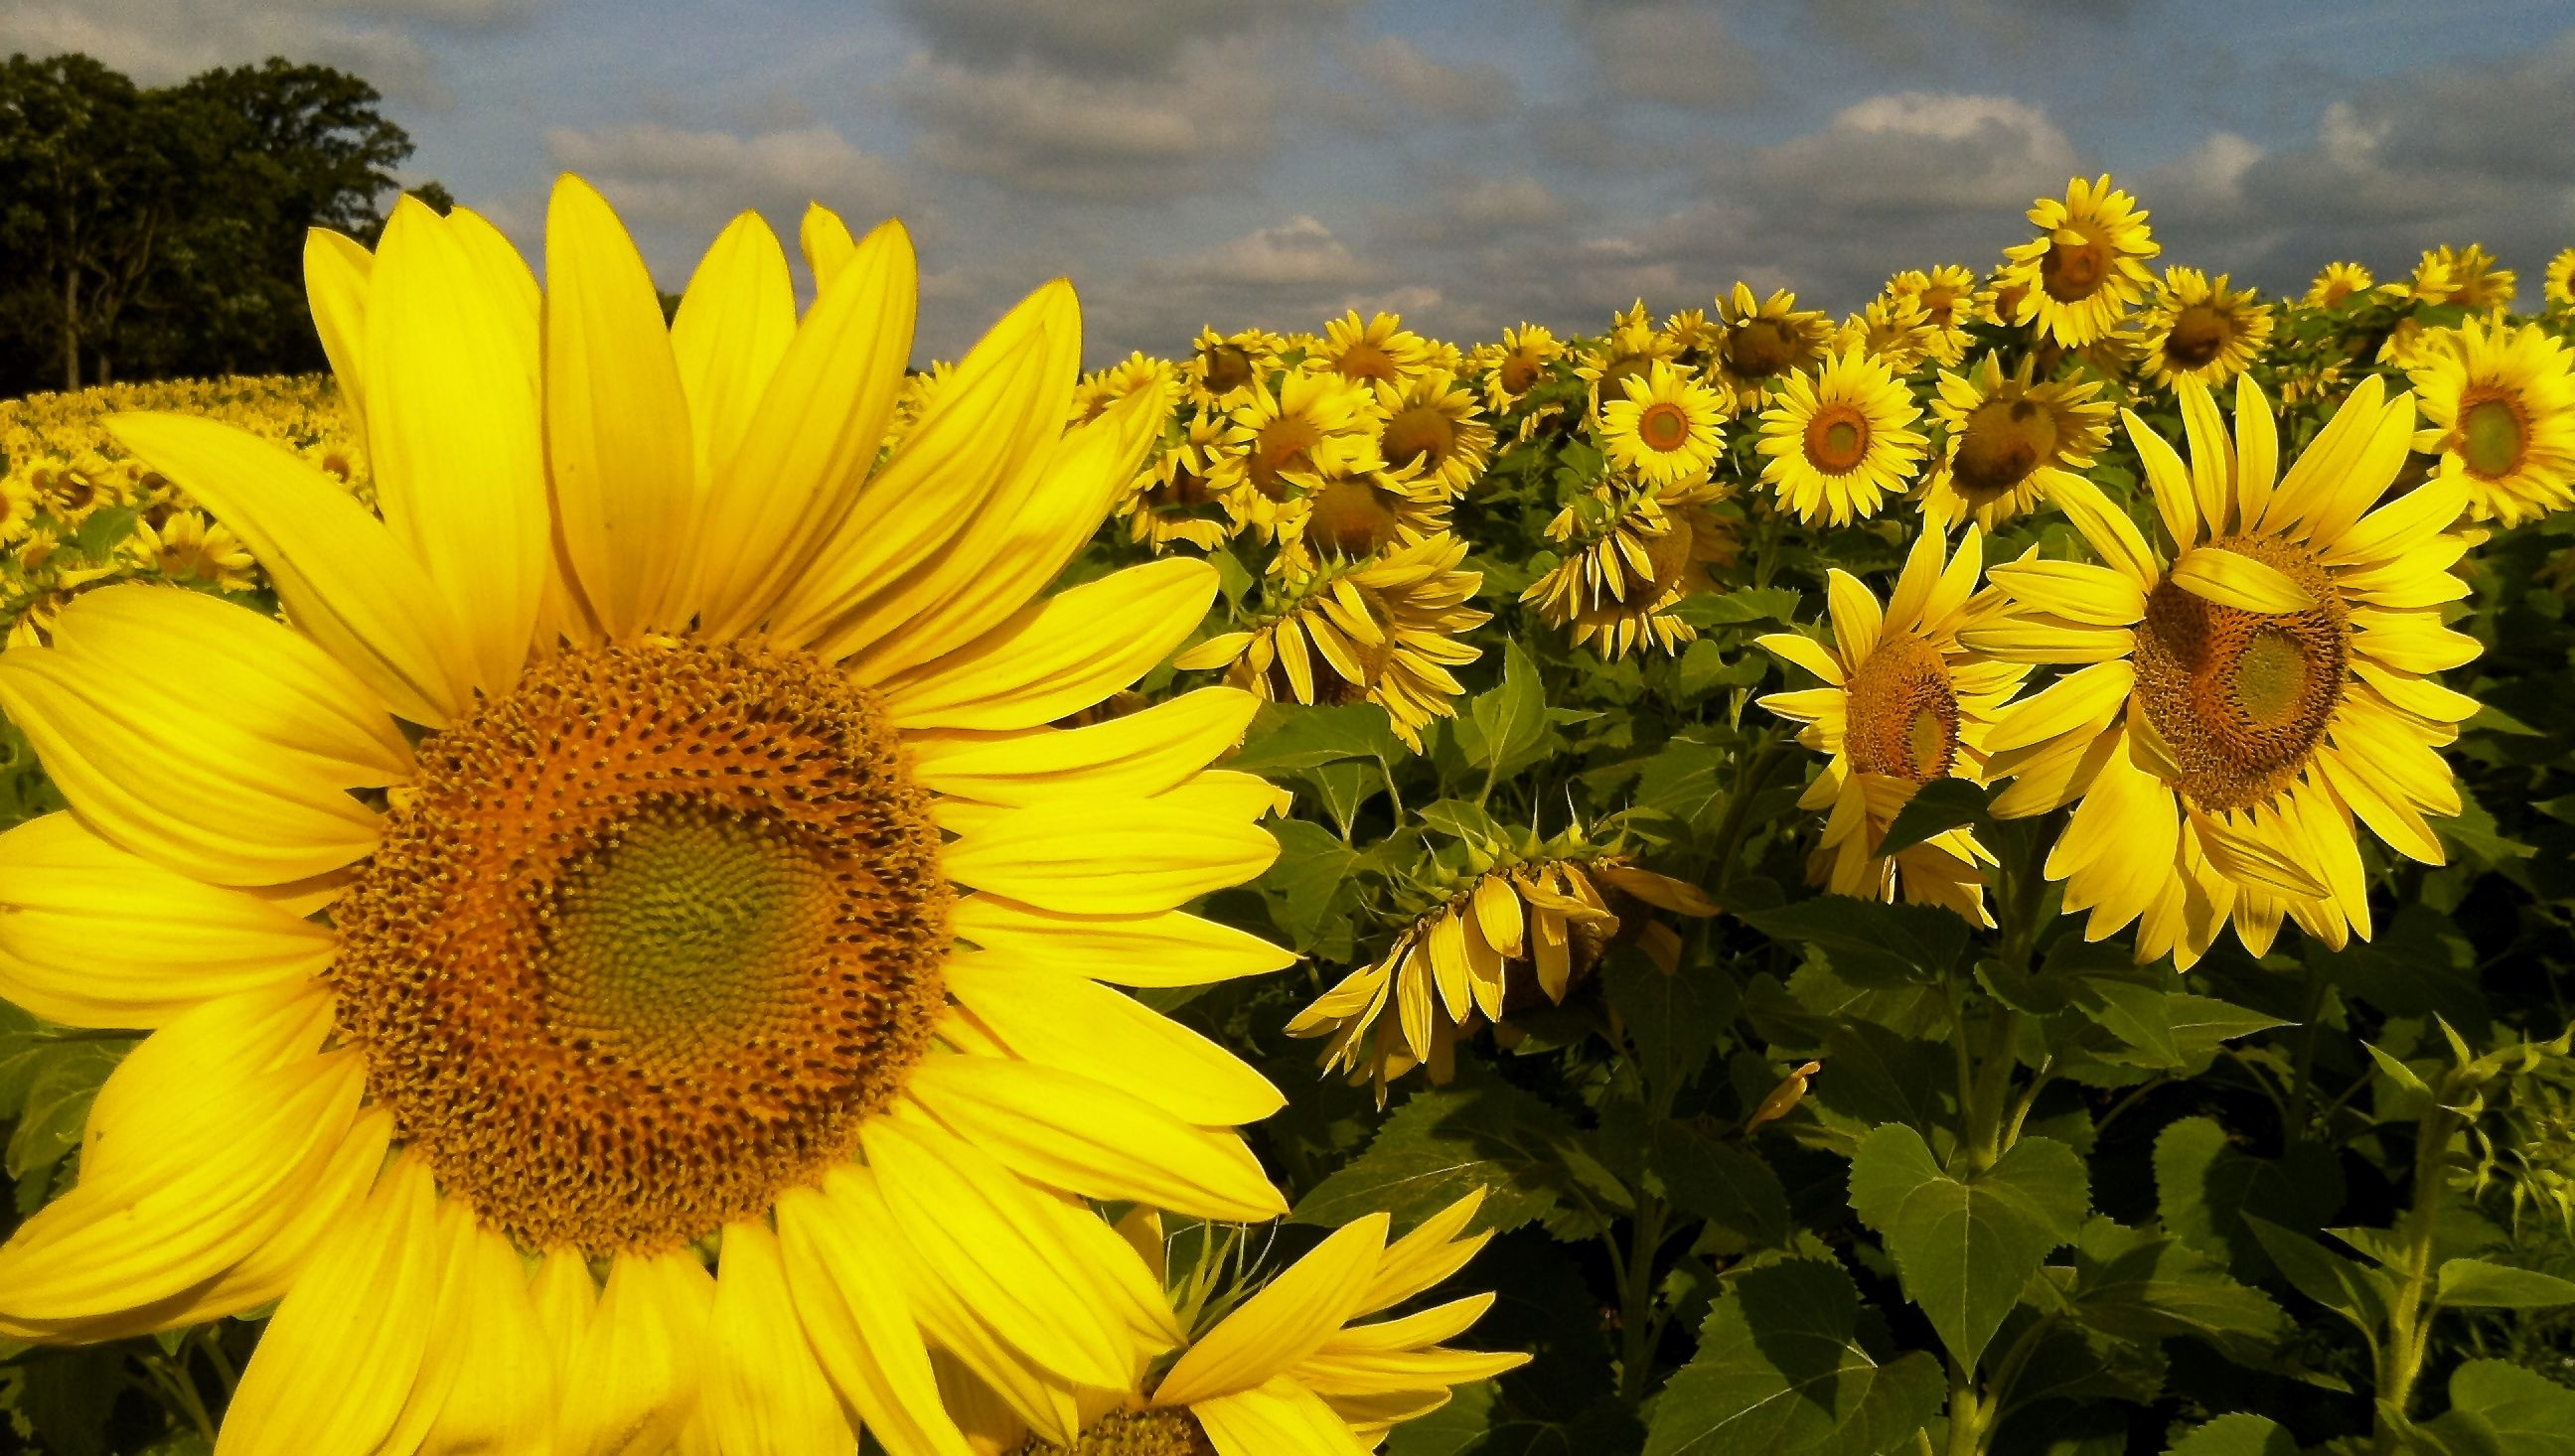 Sunflowers.......the epitome of Happiness :)